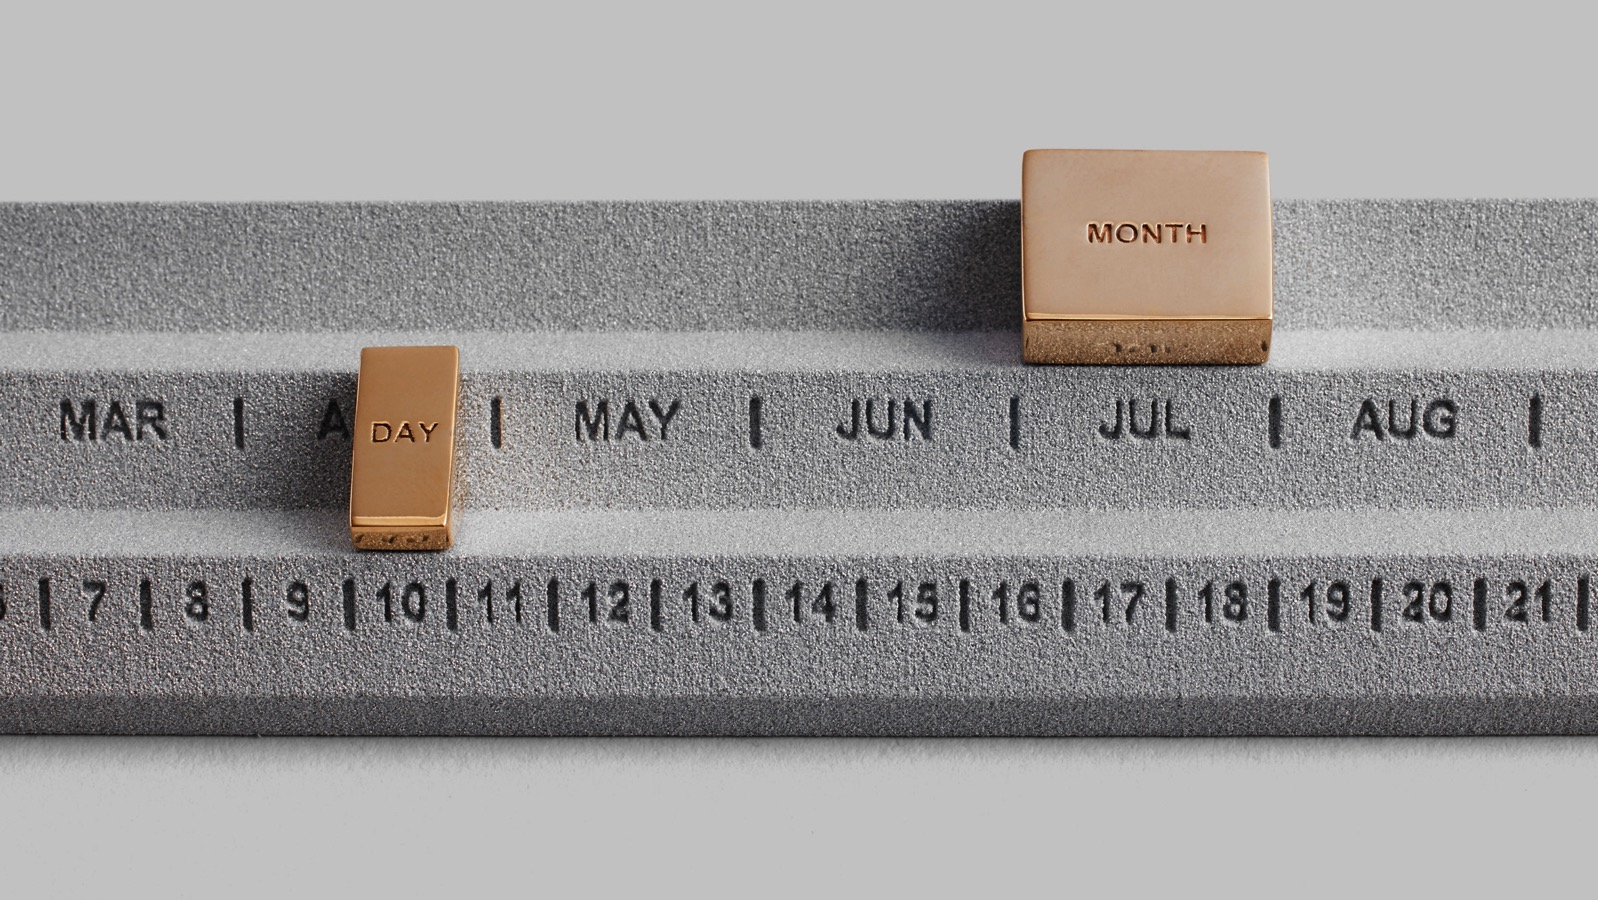 Perpetuum calendar studio yonoh design products dezeen 2364 hero